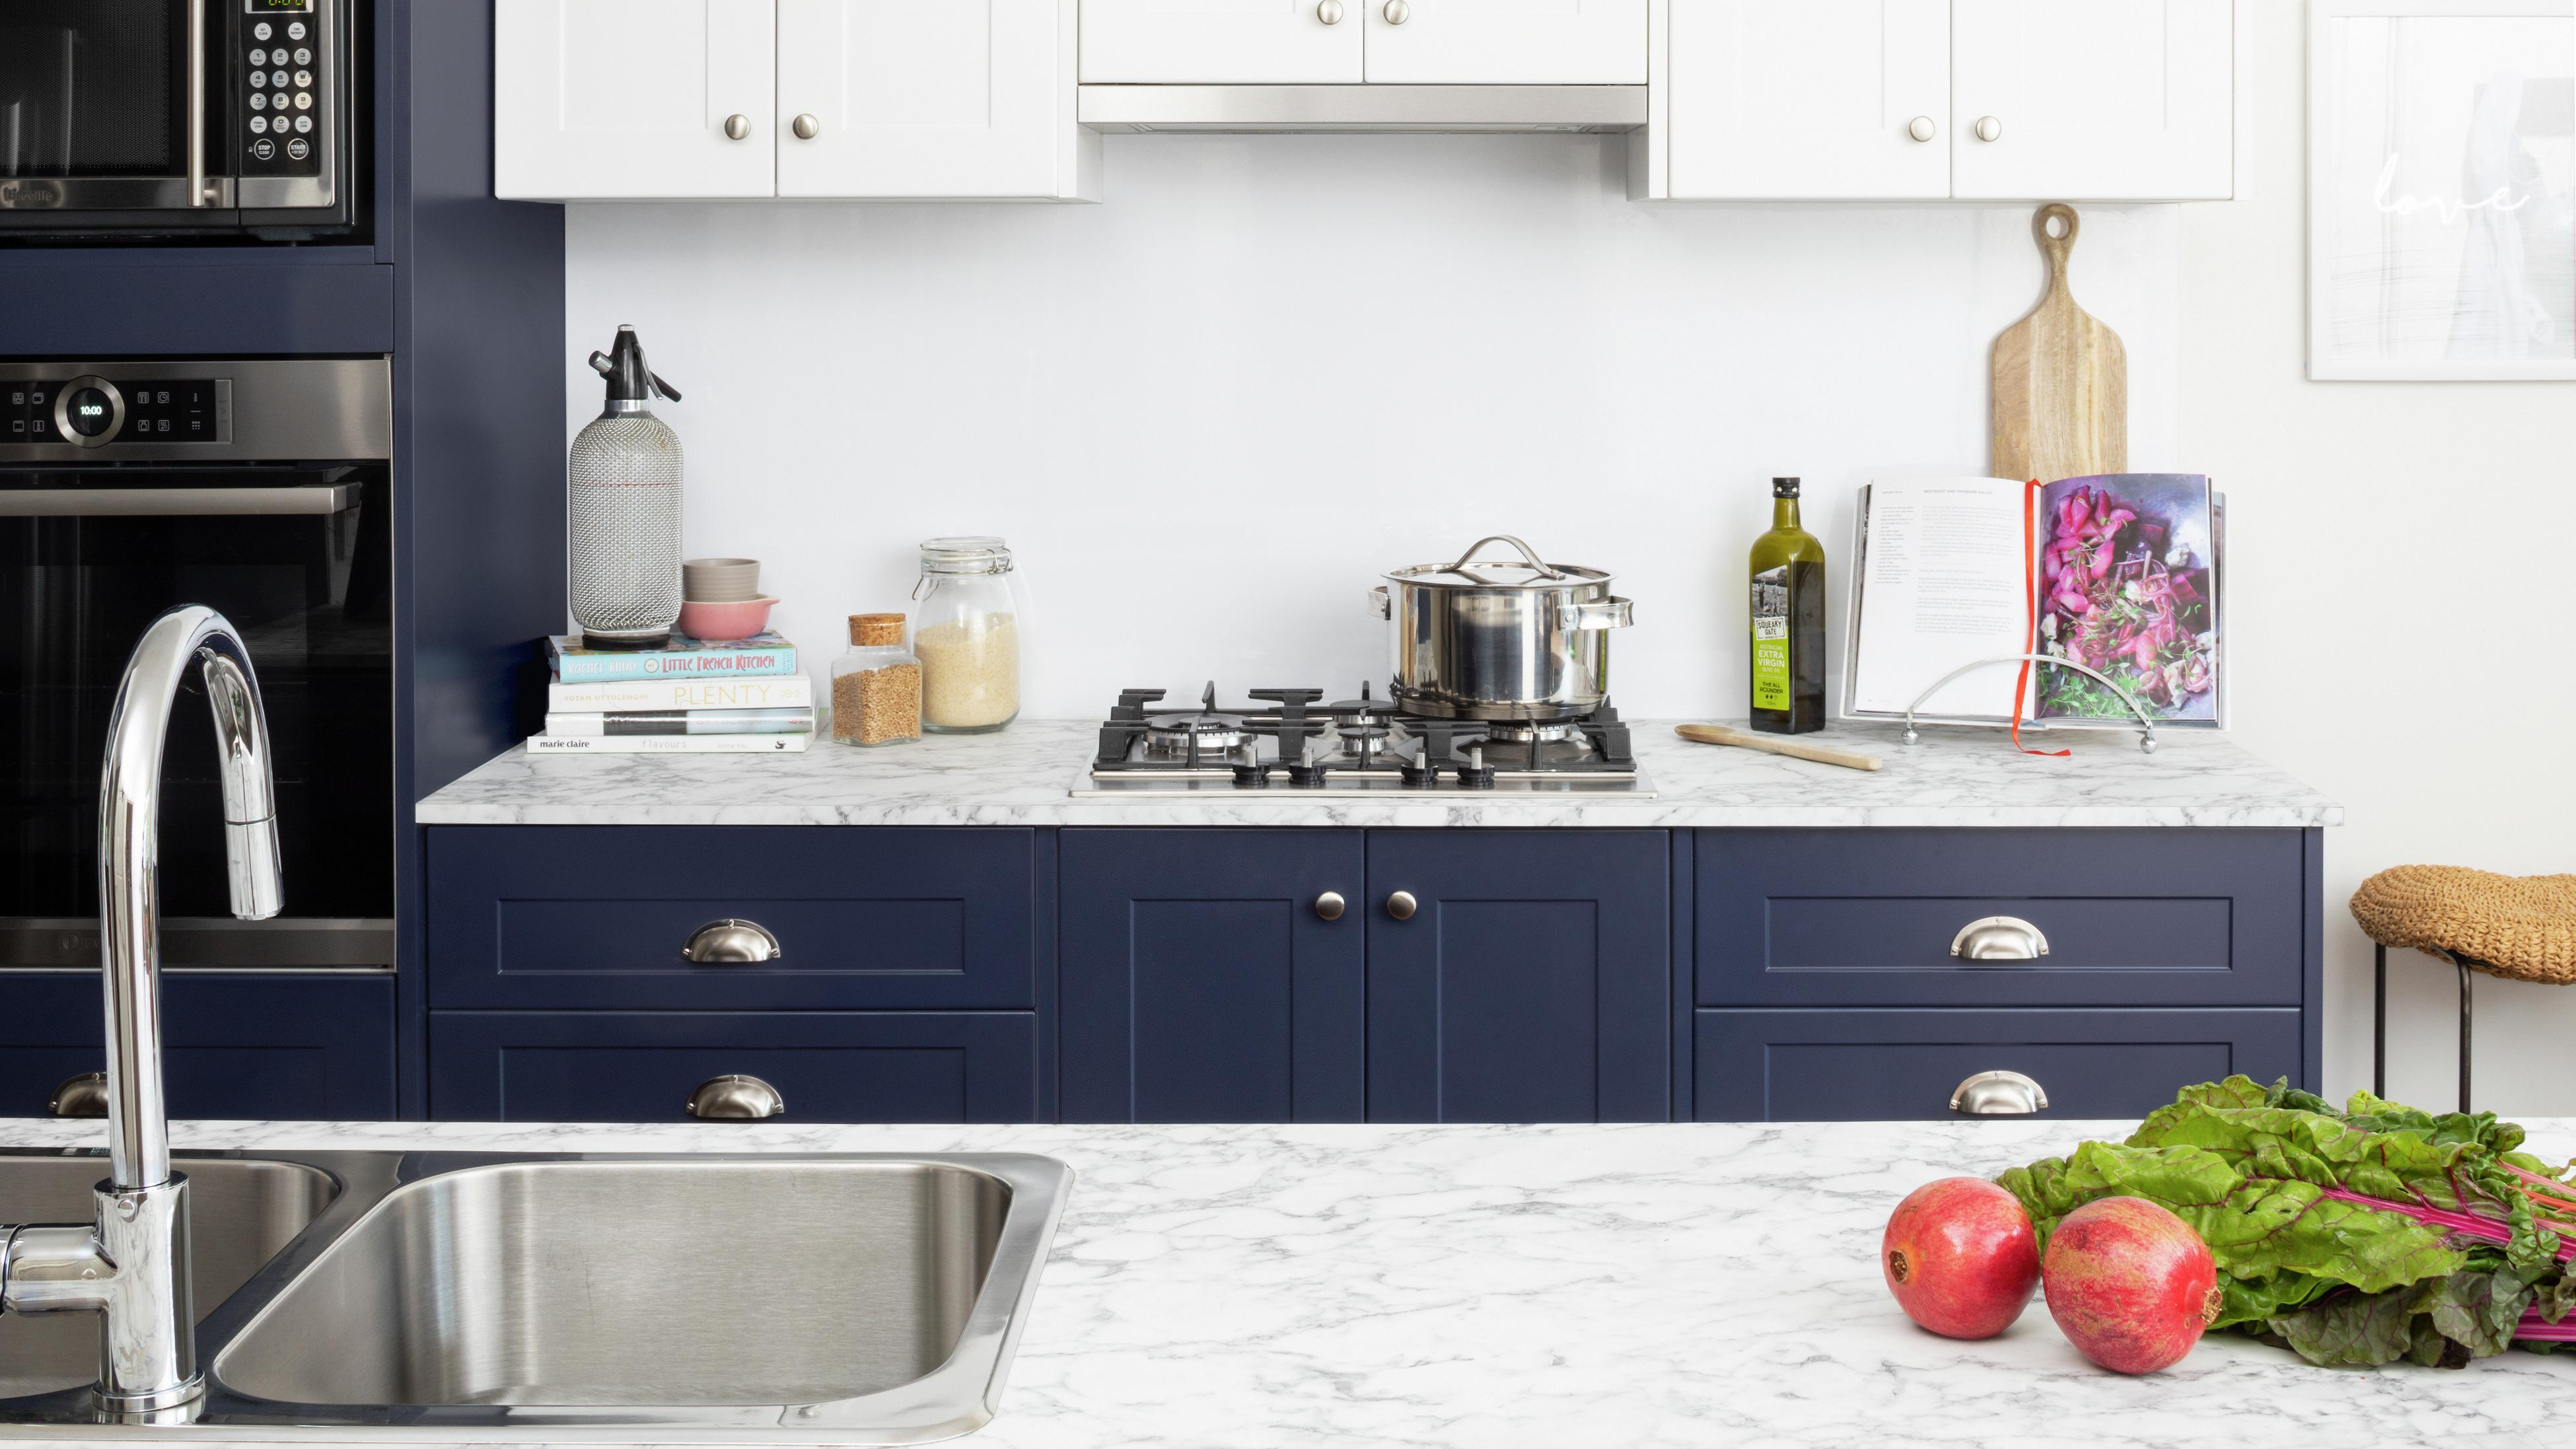 Kitchen with blue and white cabinets and a marble benchtop.